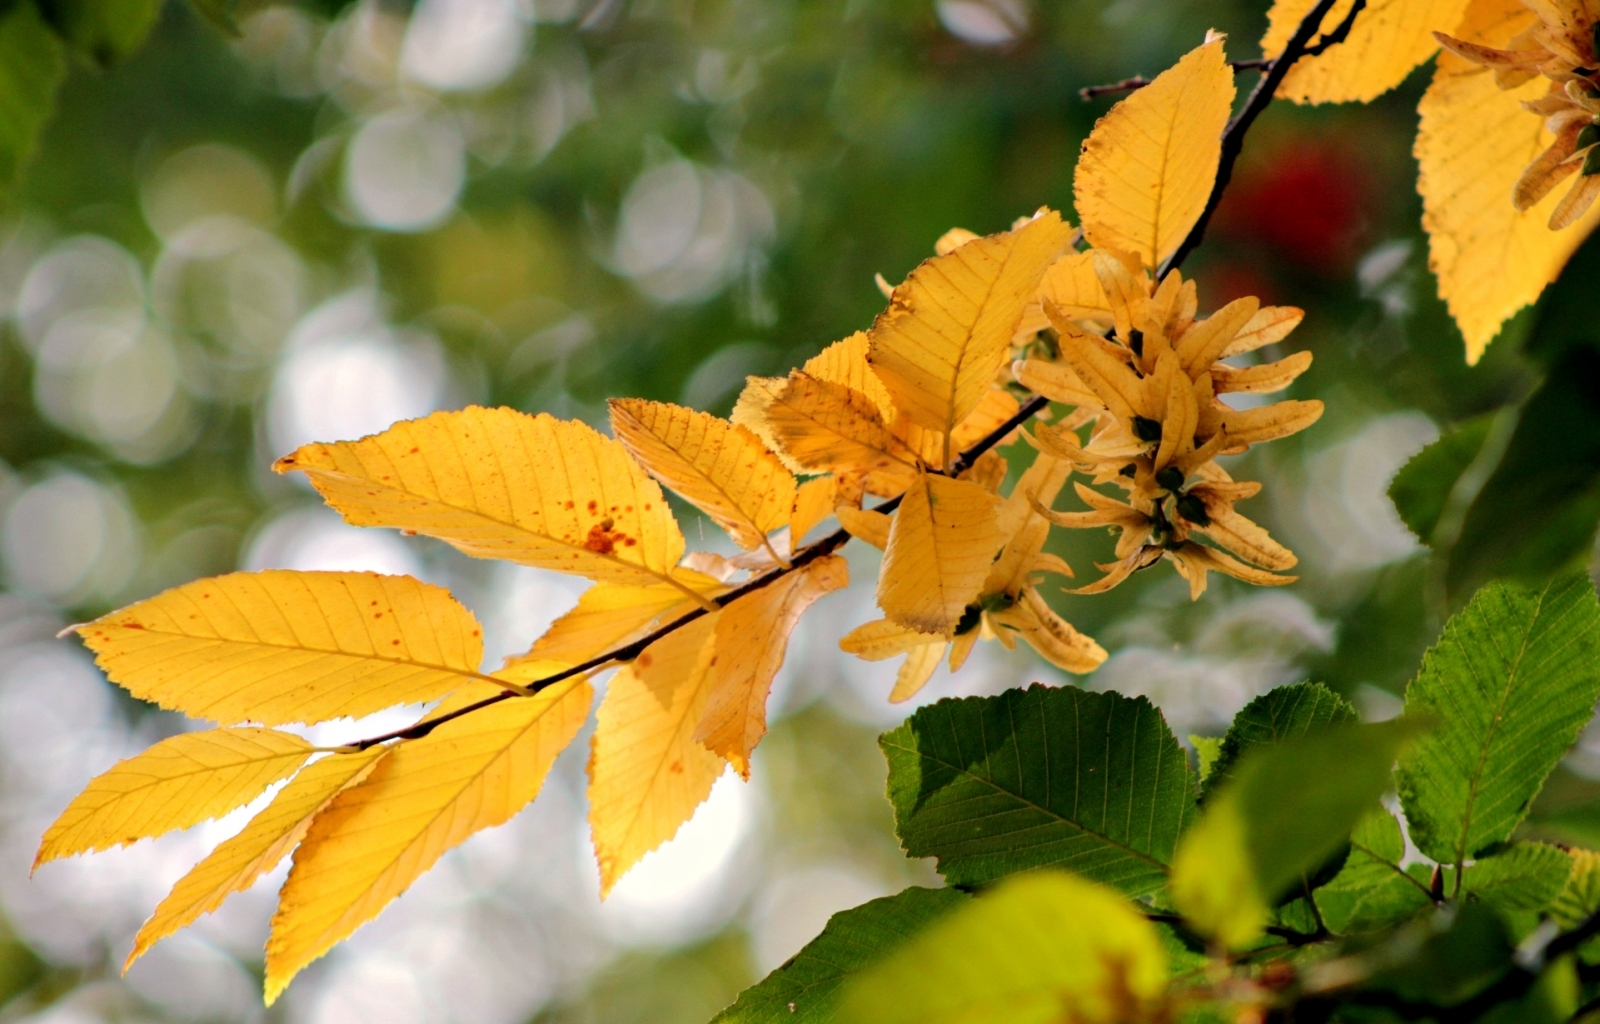 27559 download wallpaper Plants, Autumn, Leaves screensavers and pictures for free